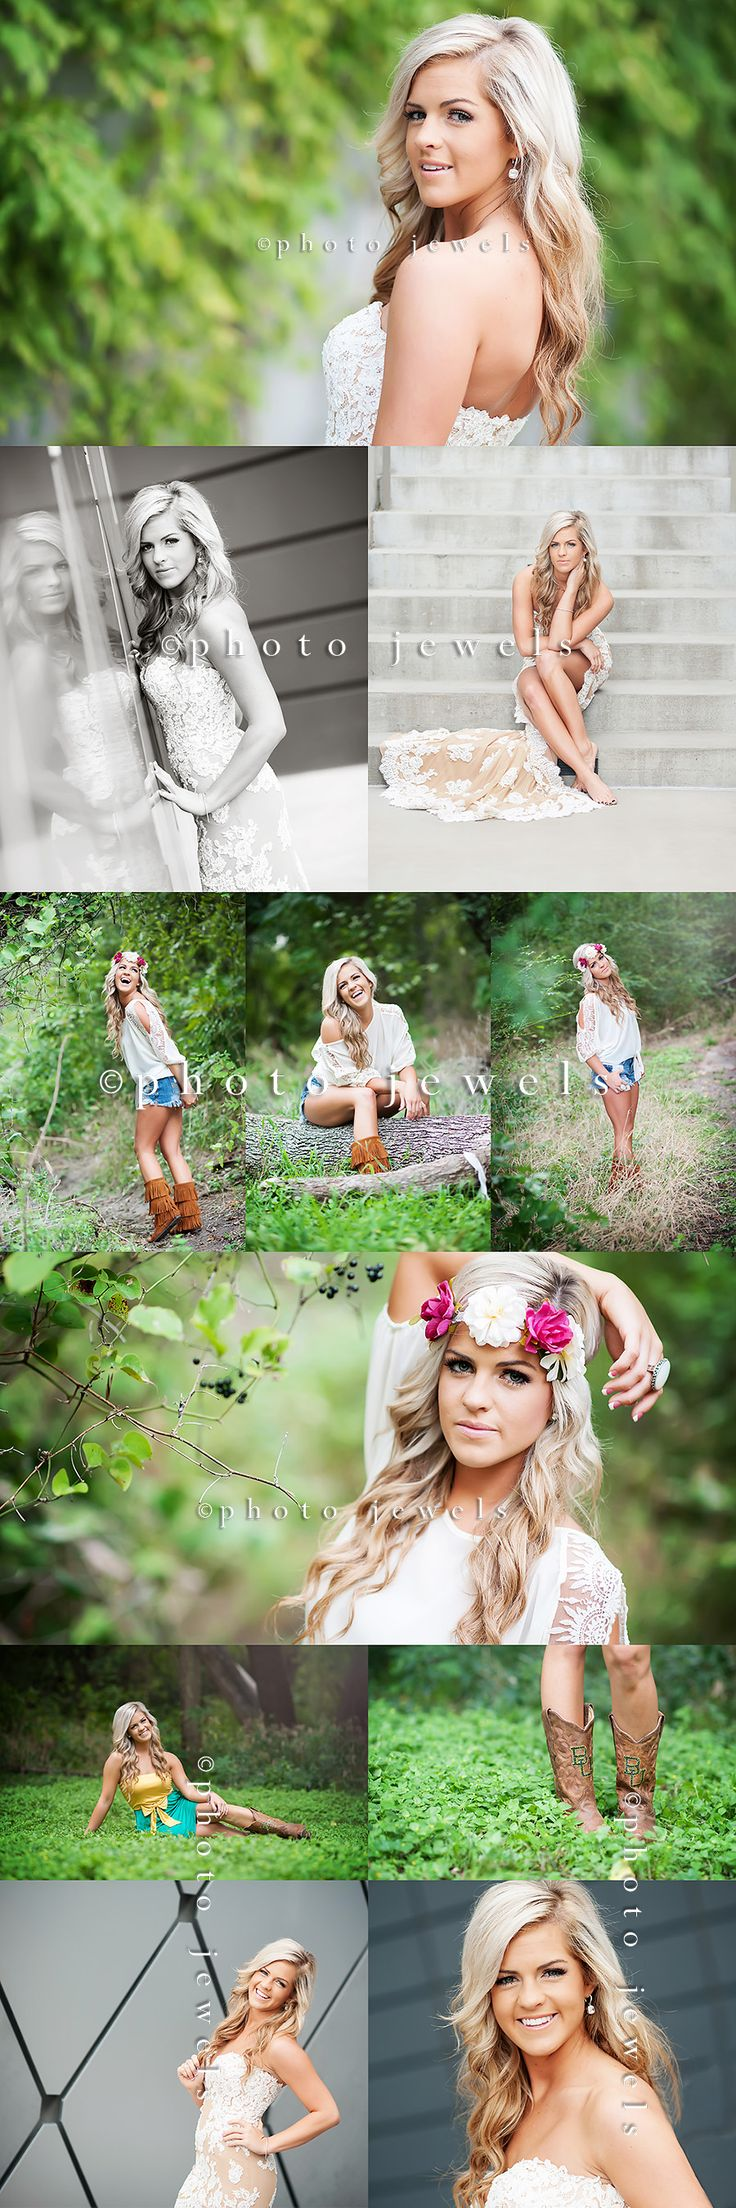 Madeline, Senior 2014 – {senior photographer rockwall} » Photo Jewels  (pose sitting down)